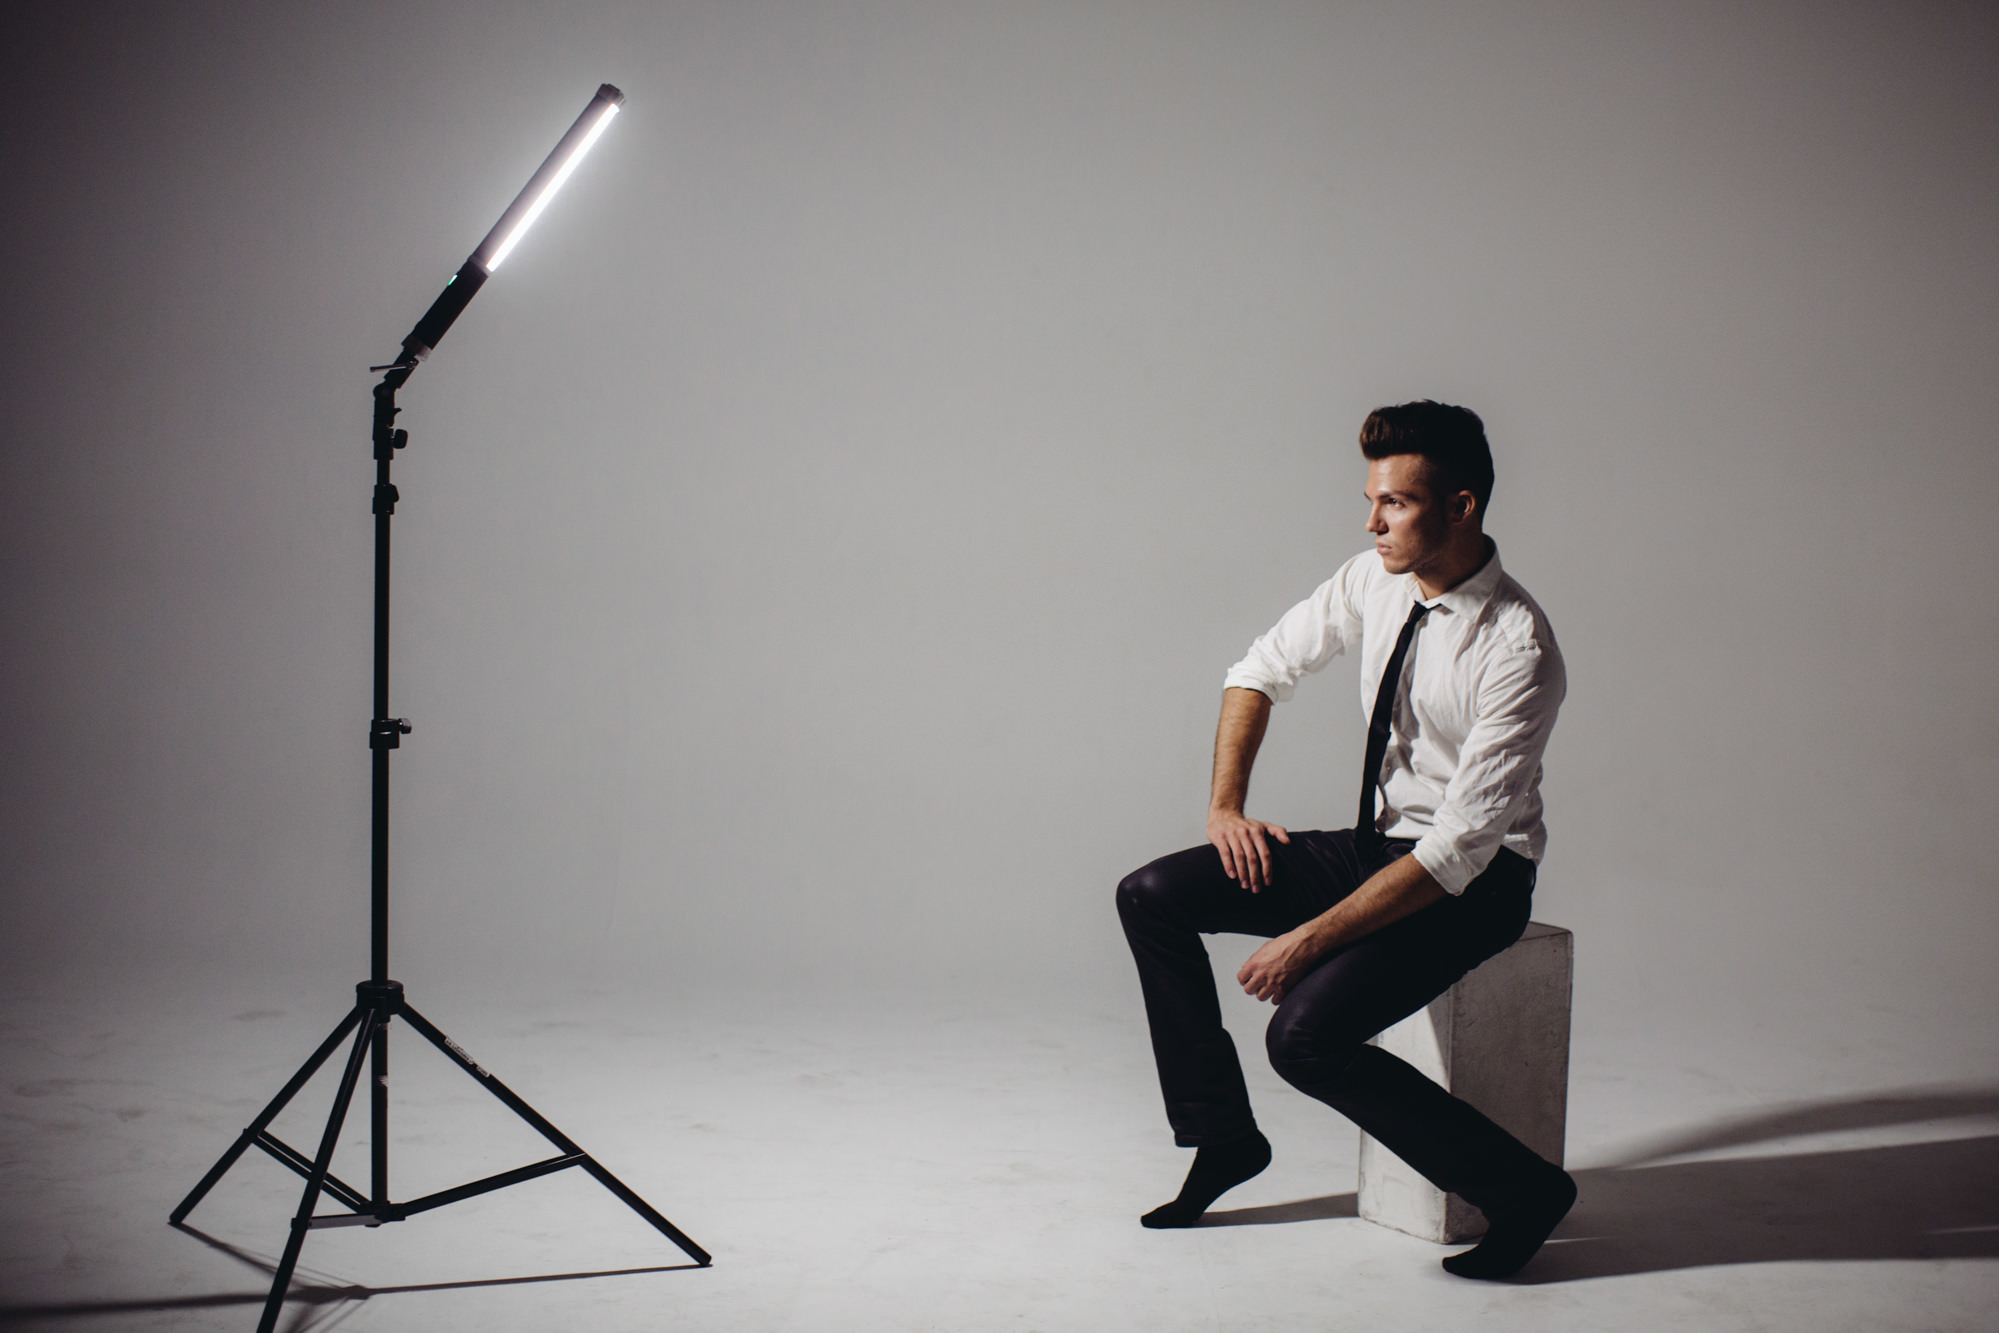 Quick little behind the scenes of how I use the Westcott Icelight   Canon 5D MkIII 50mm 1.2 / Westcott Icelight